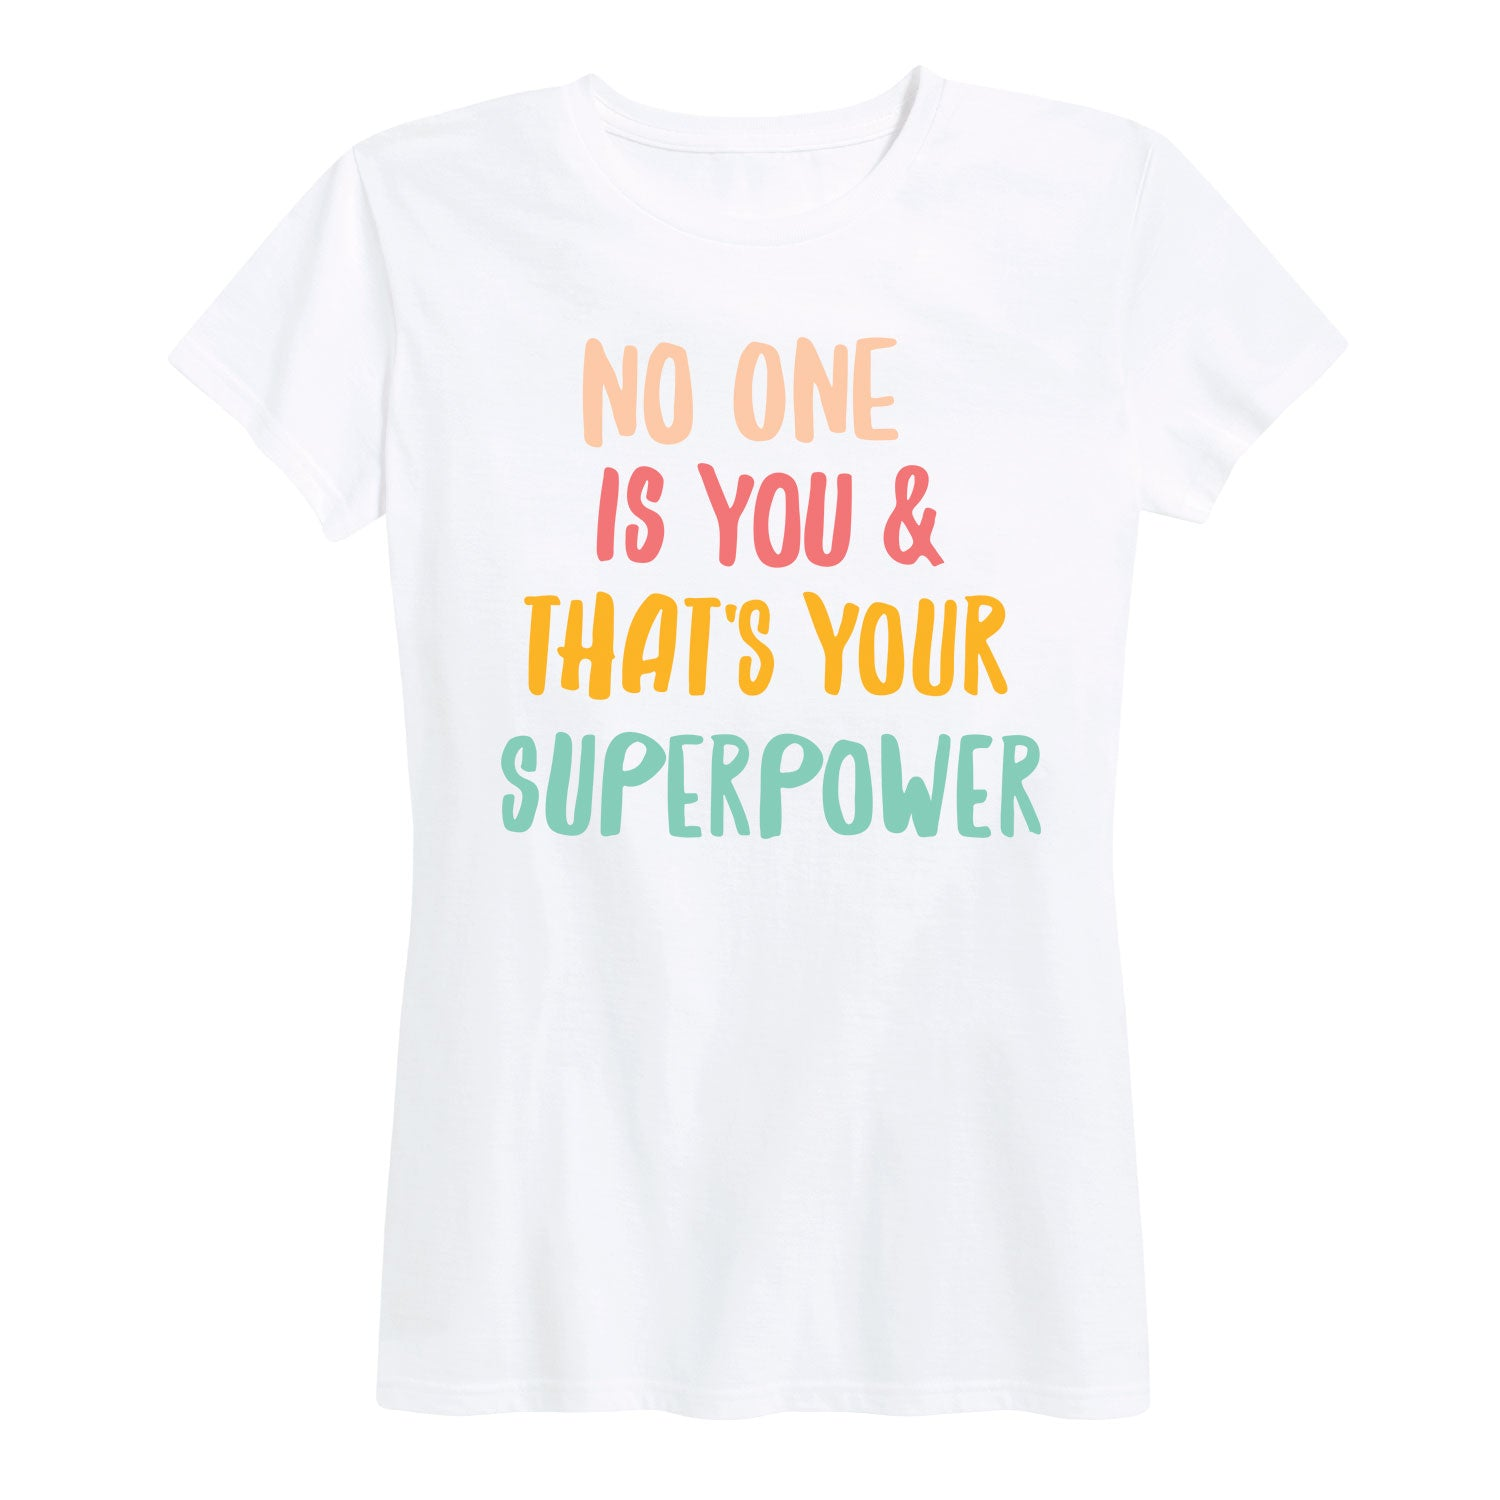 No One is You Superpower - Women's Short Sleeve T-Shirt